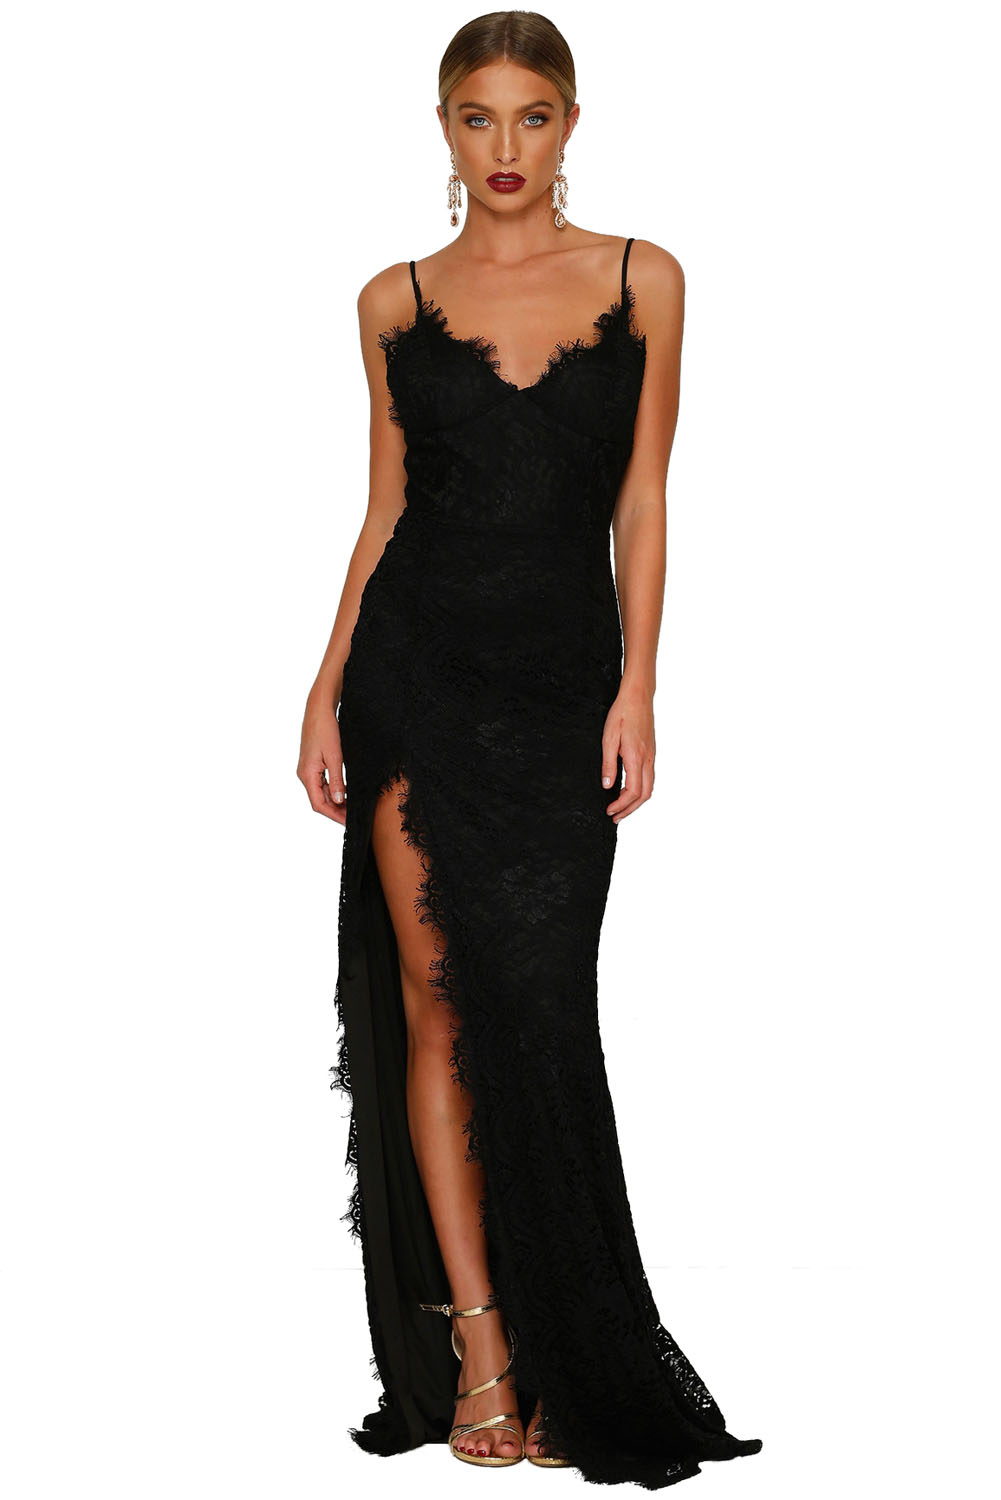 black yum lacy lace bridal wedding gown charming wear. Black Bedroom Furniture Sets. Home Design Ideas